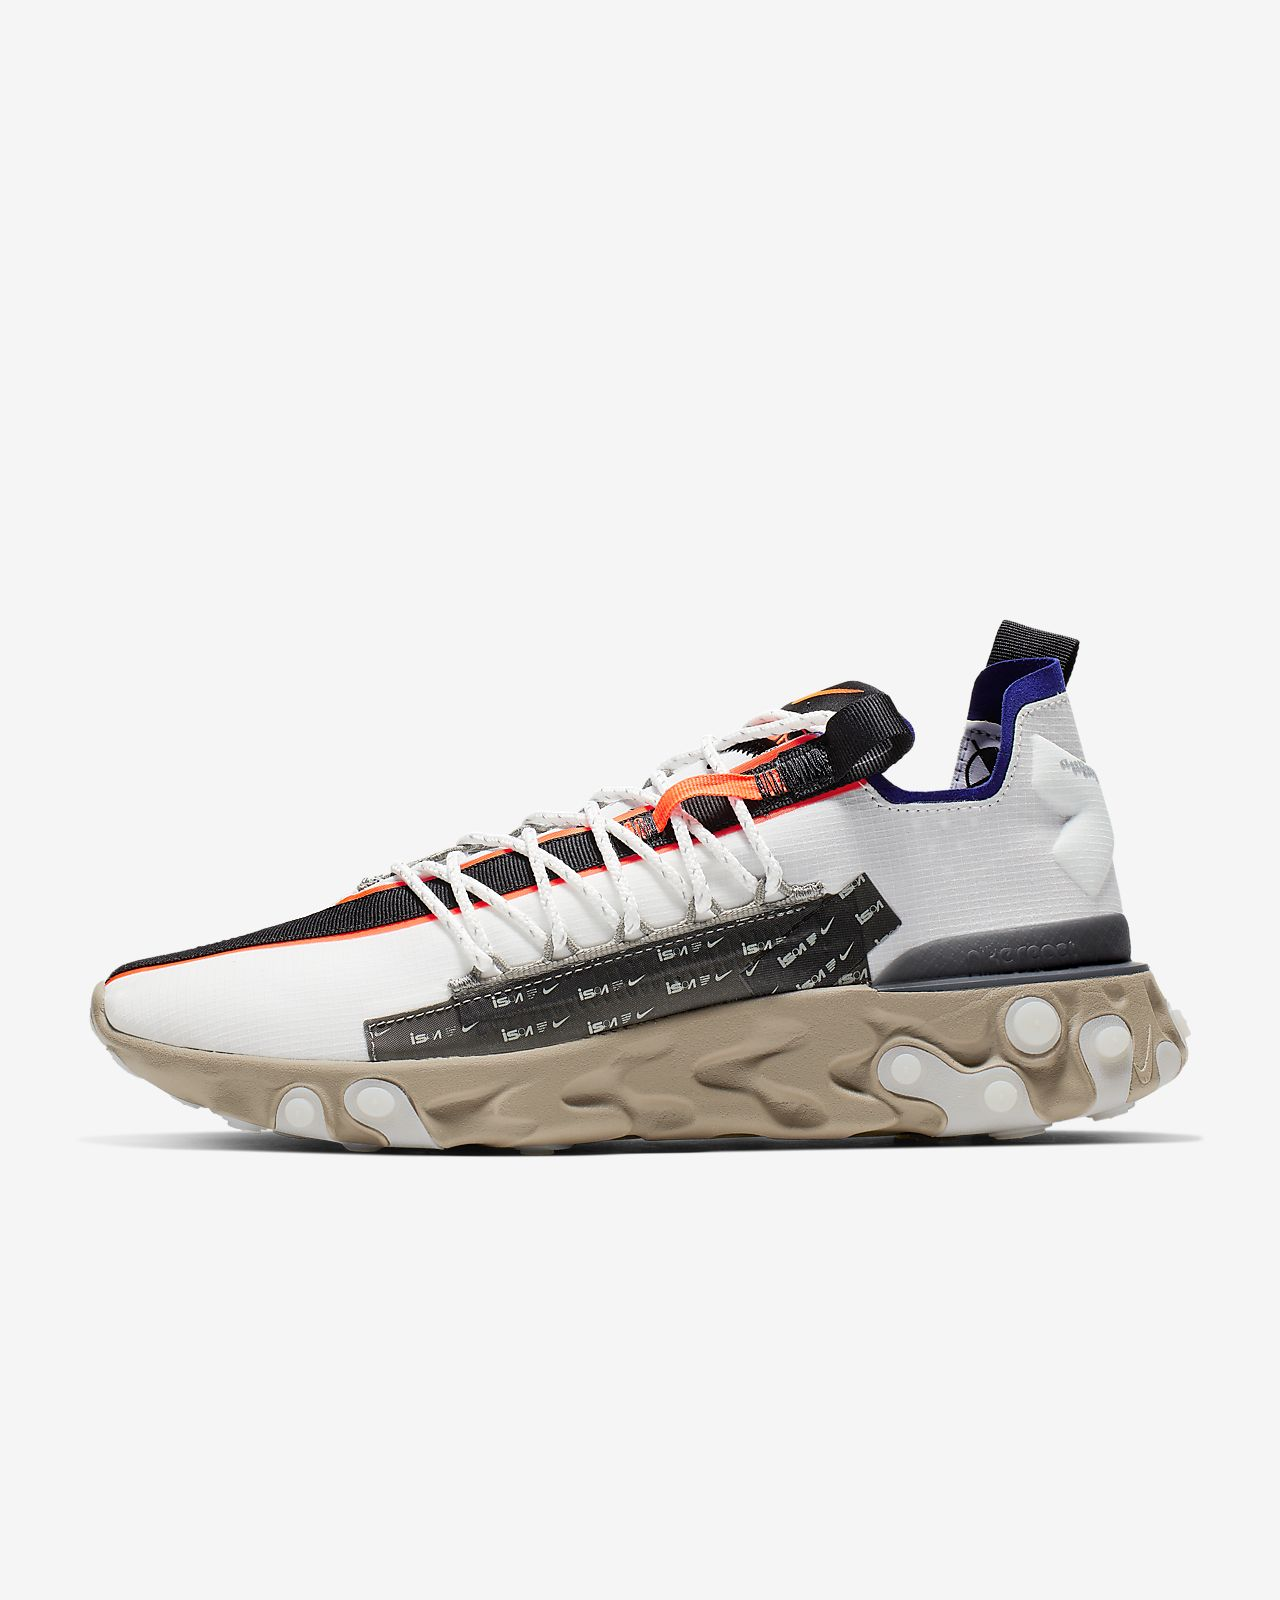 ... Nike ISPA React WR Men's Shoe